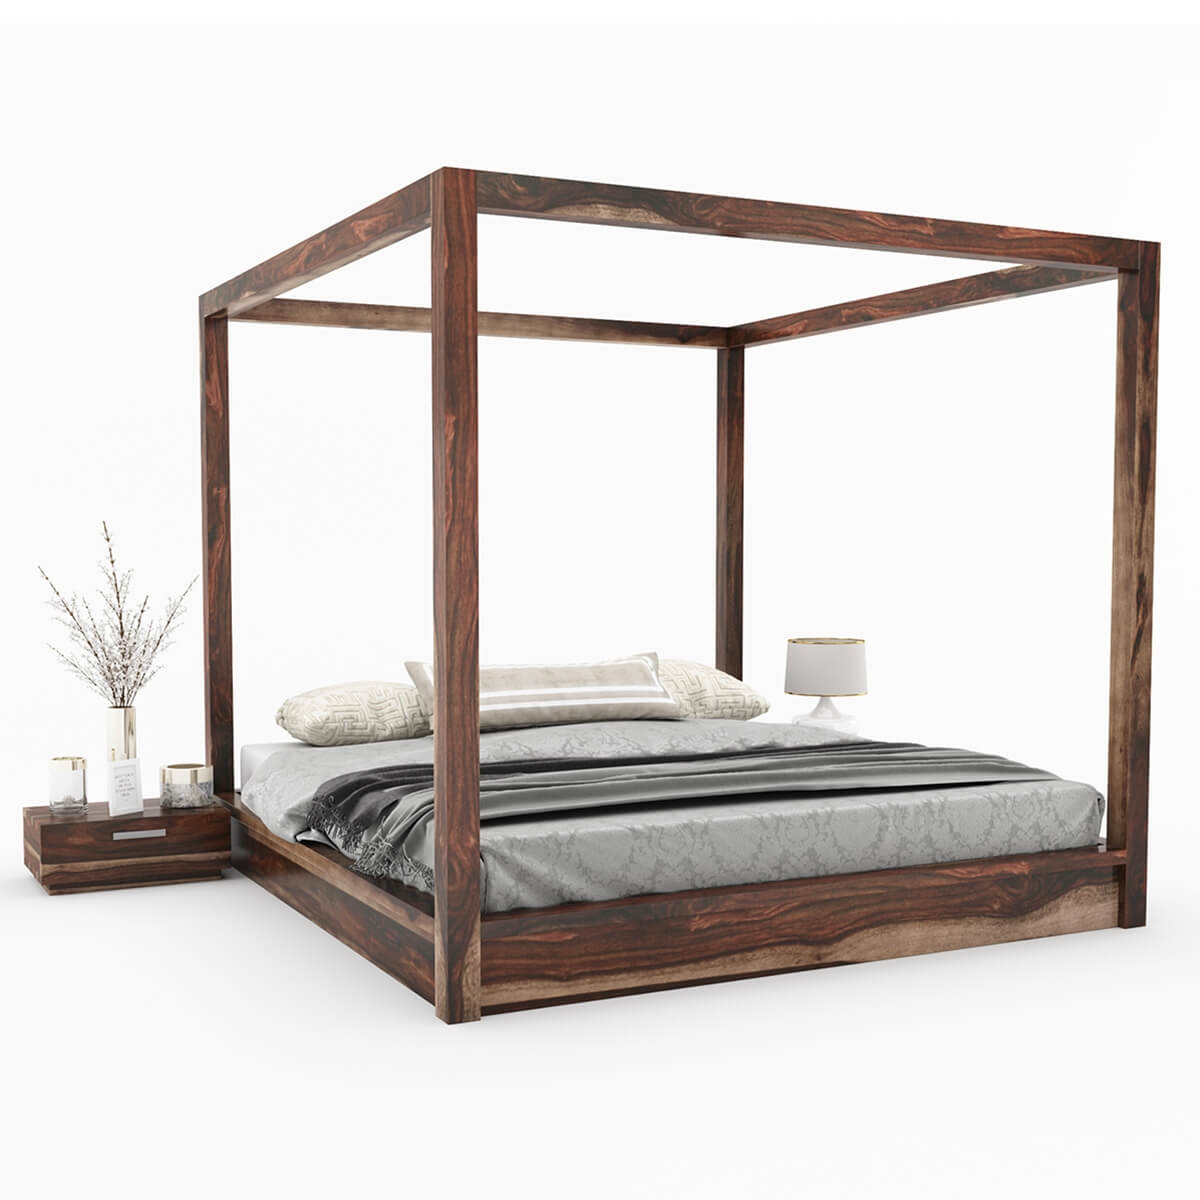 Solid Wood Bed Hampshire Rustic Solid Wood King Size Canopy Bed